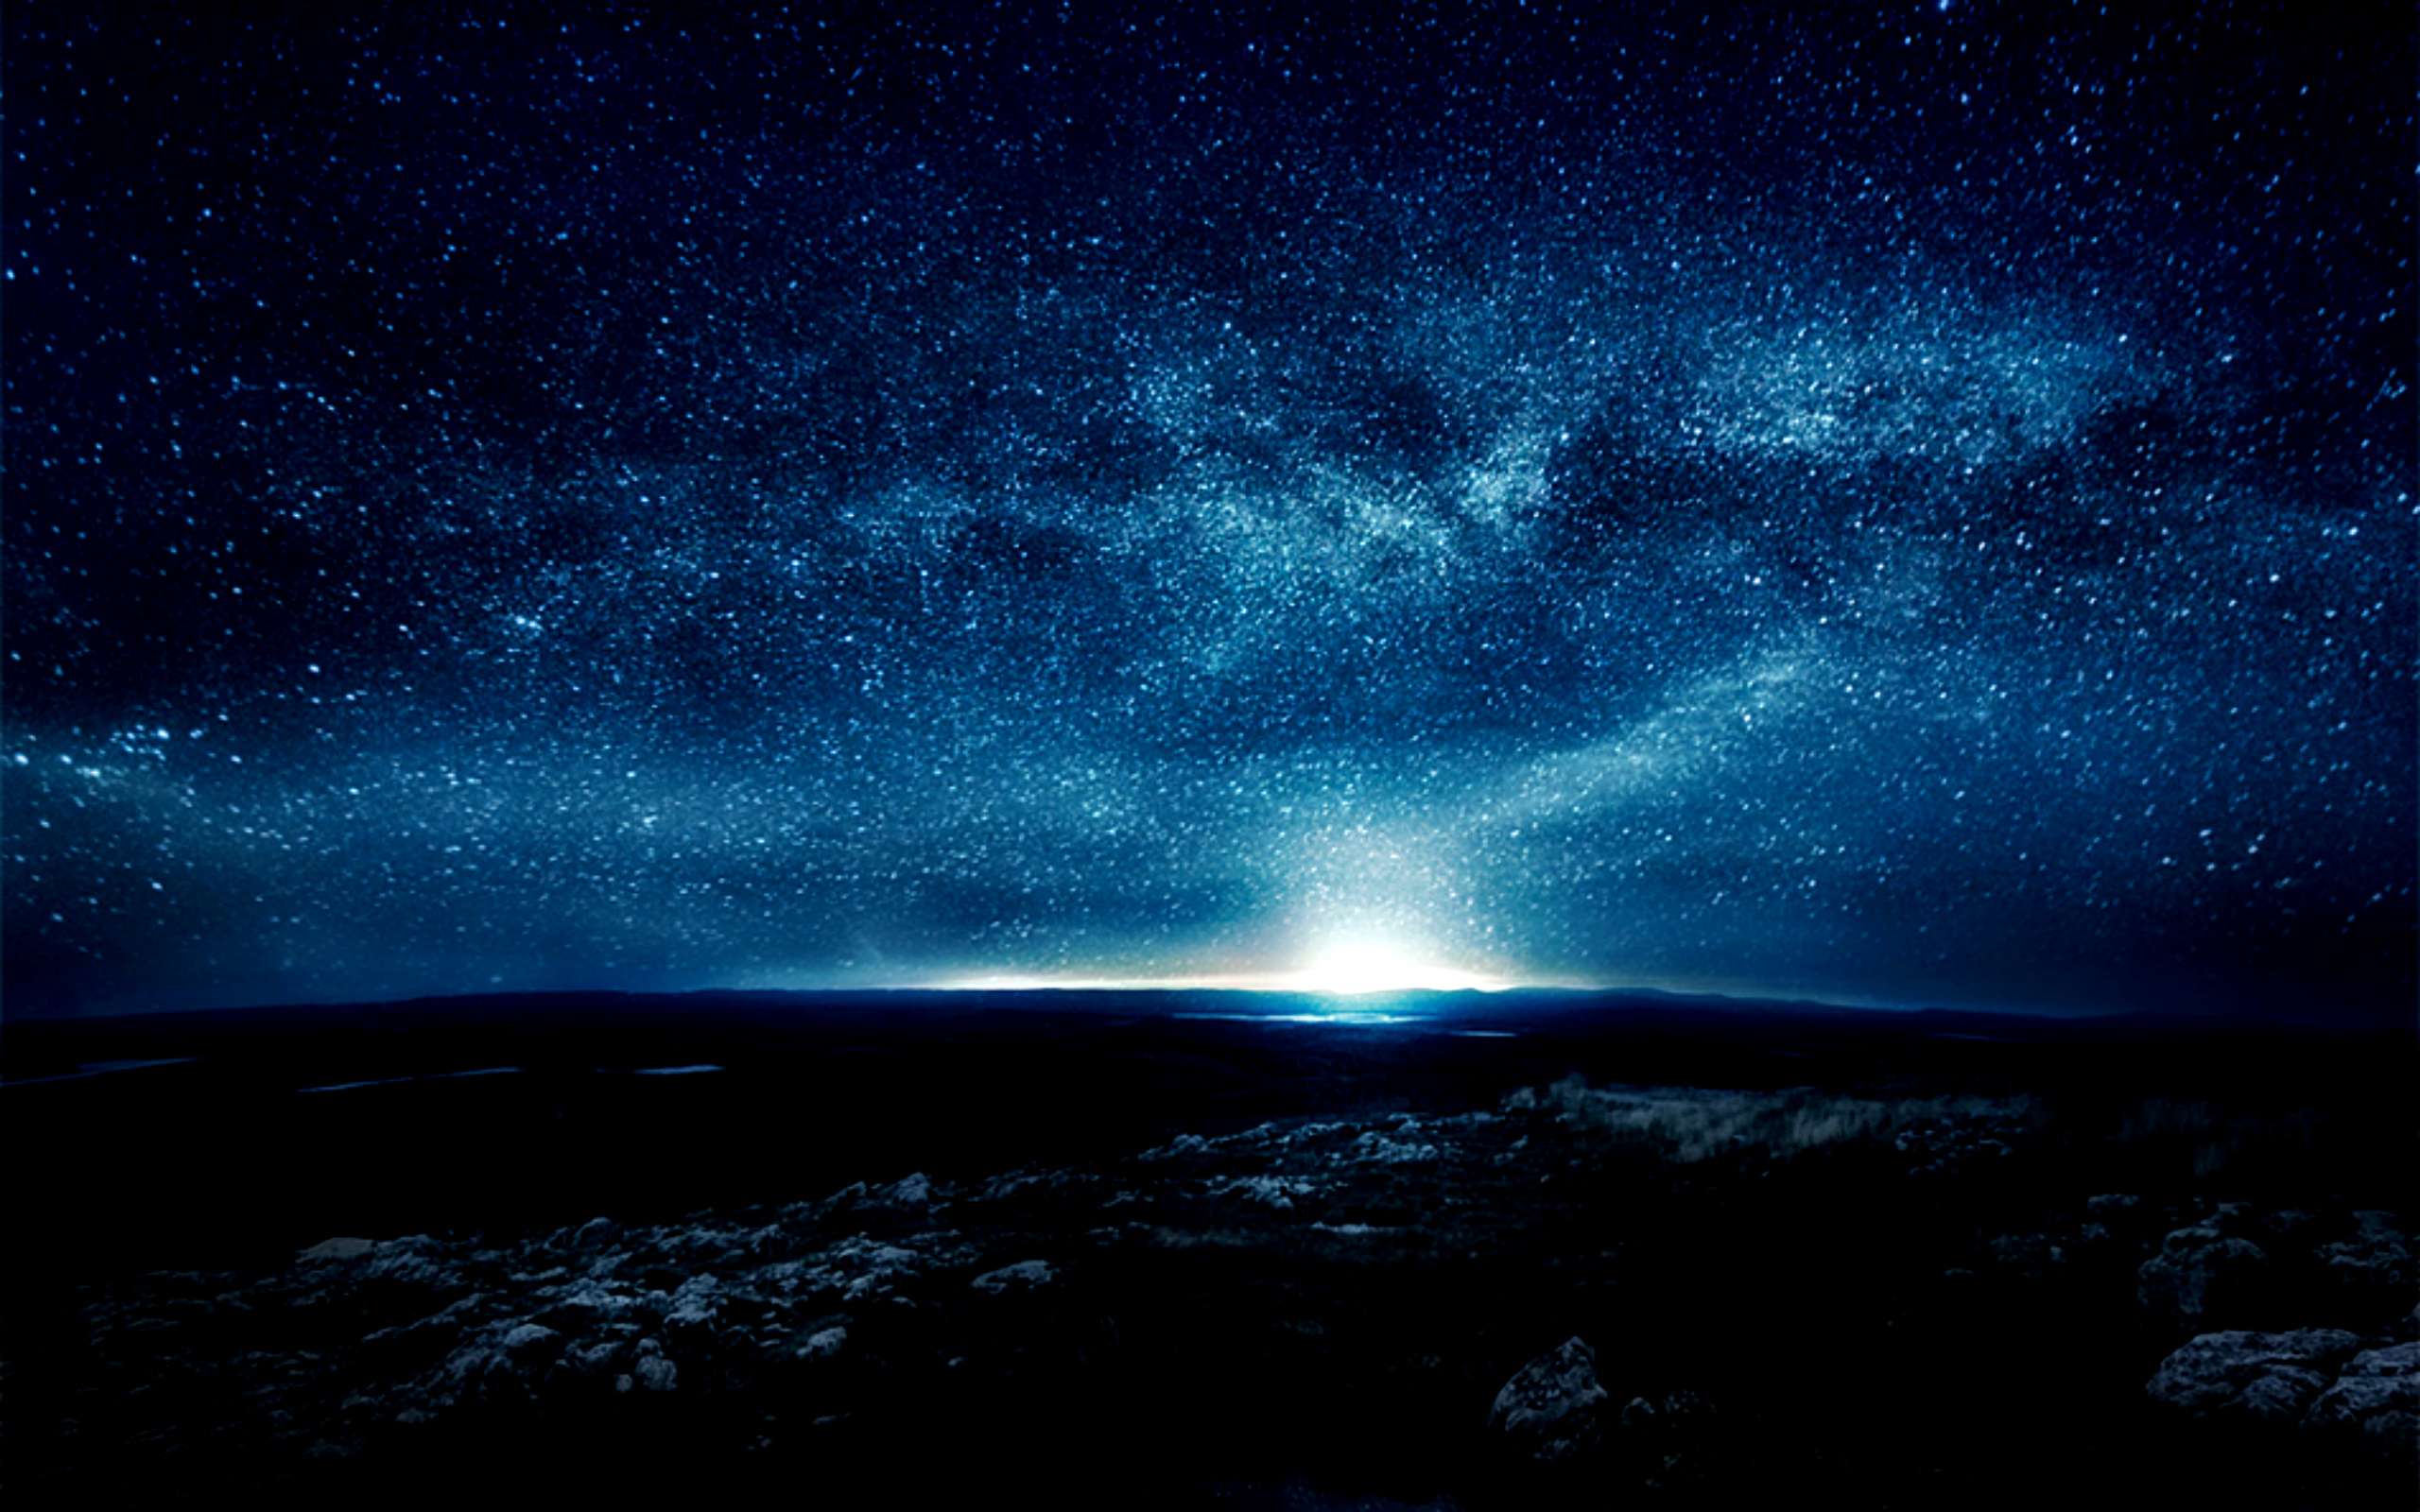 starry-night-sky-wallpaper-hd-i-